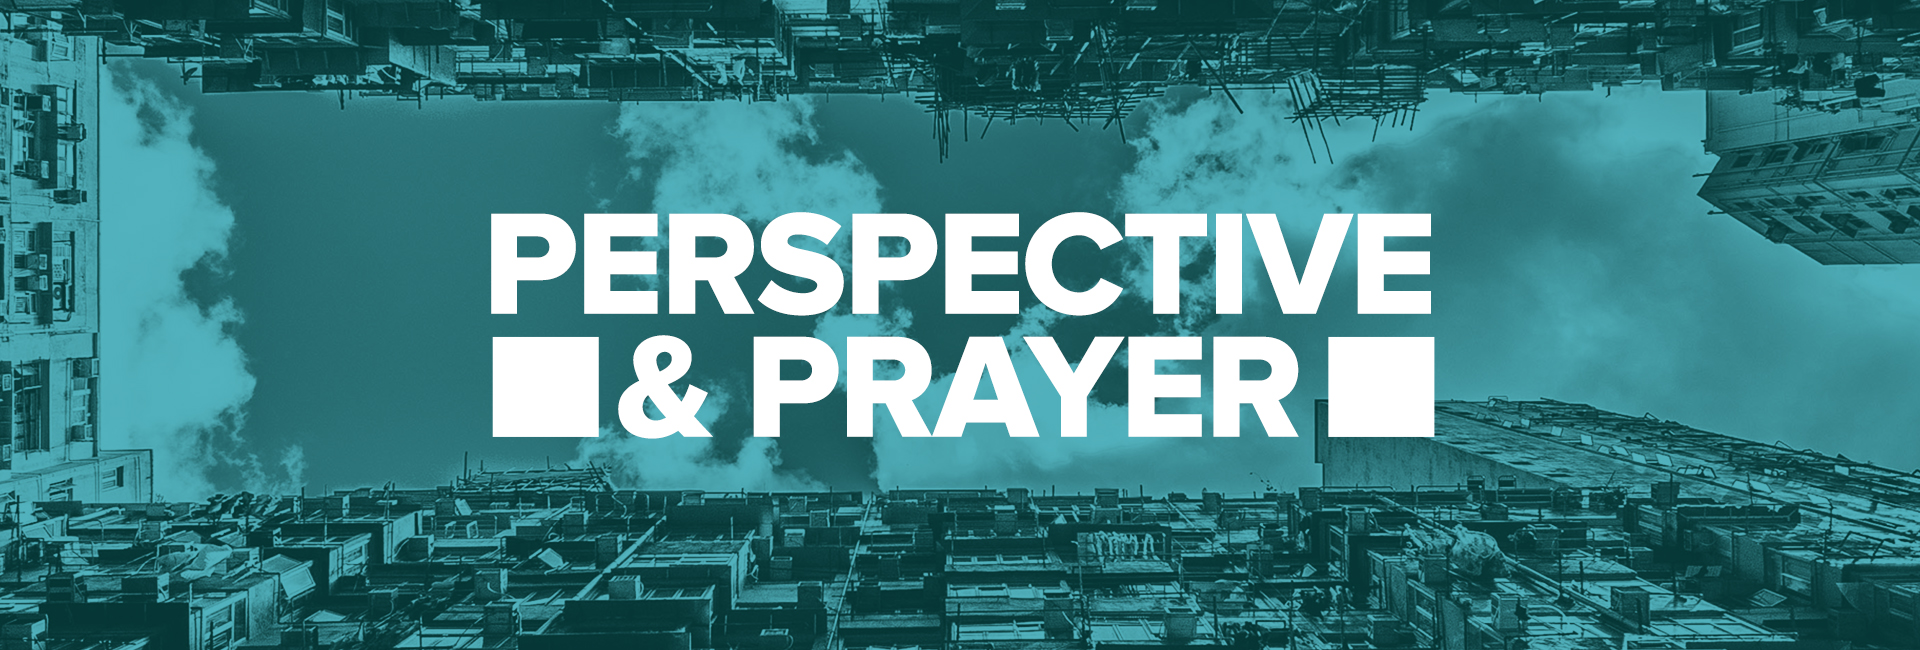 Perspective & Prayer